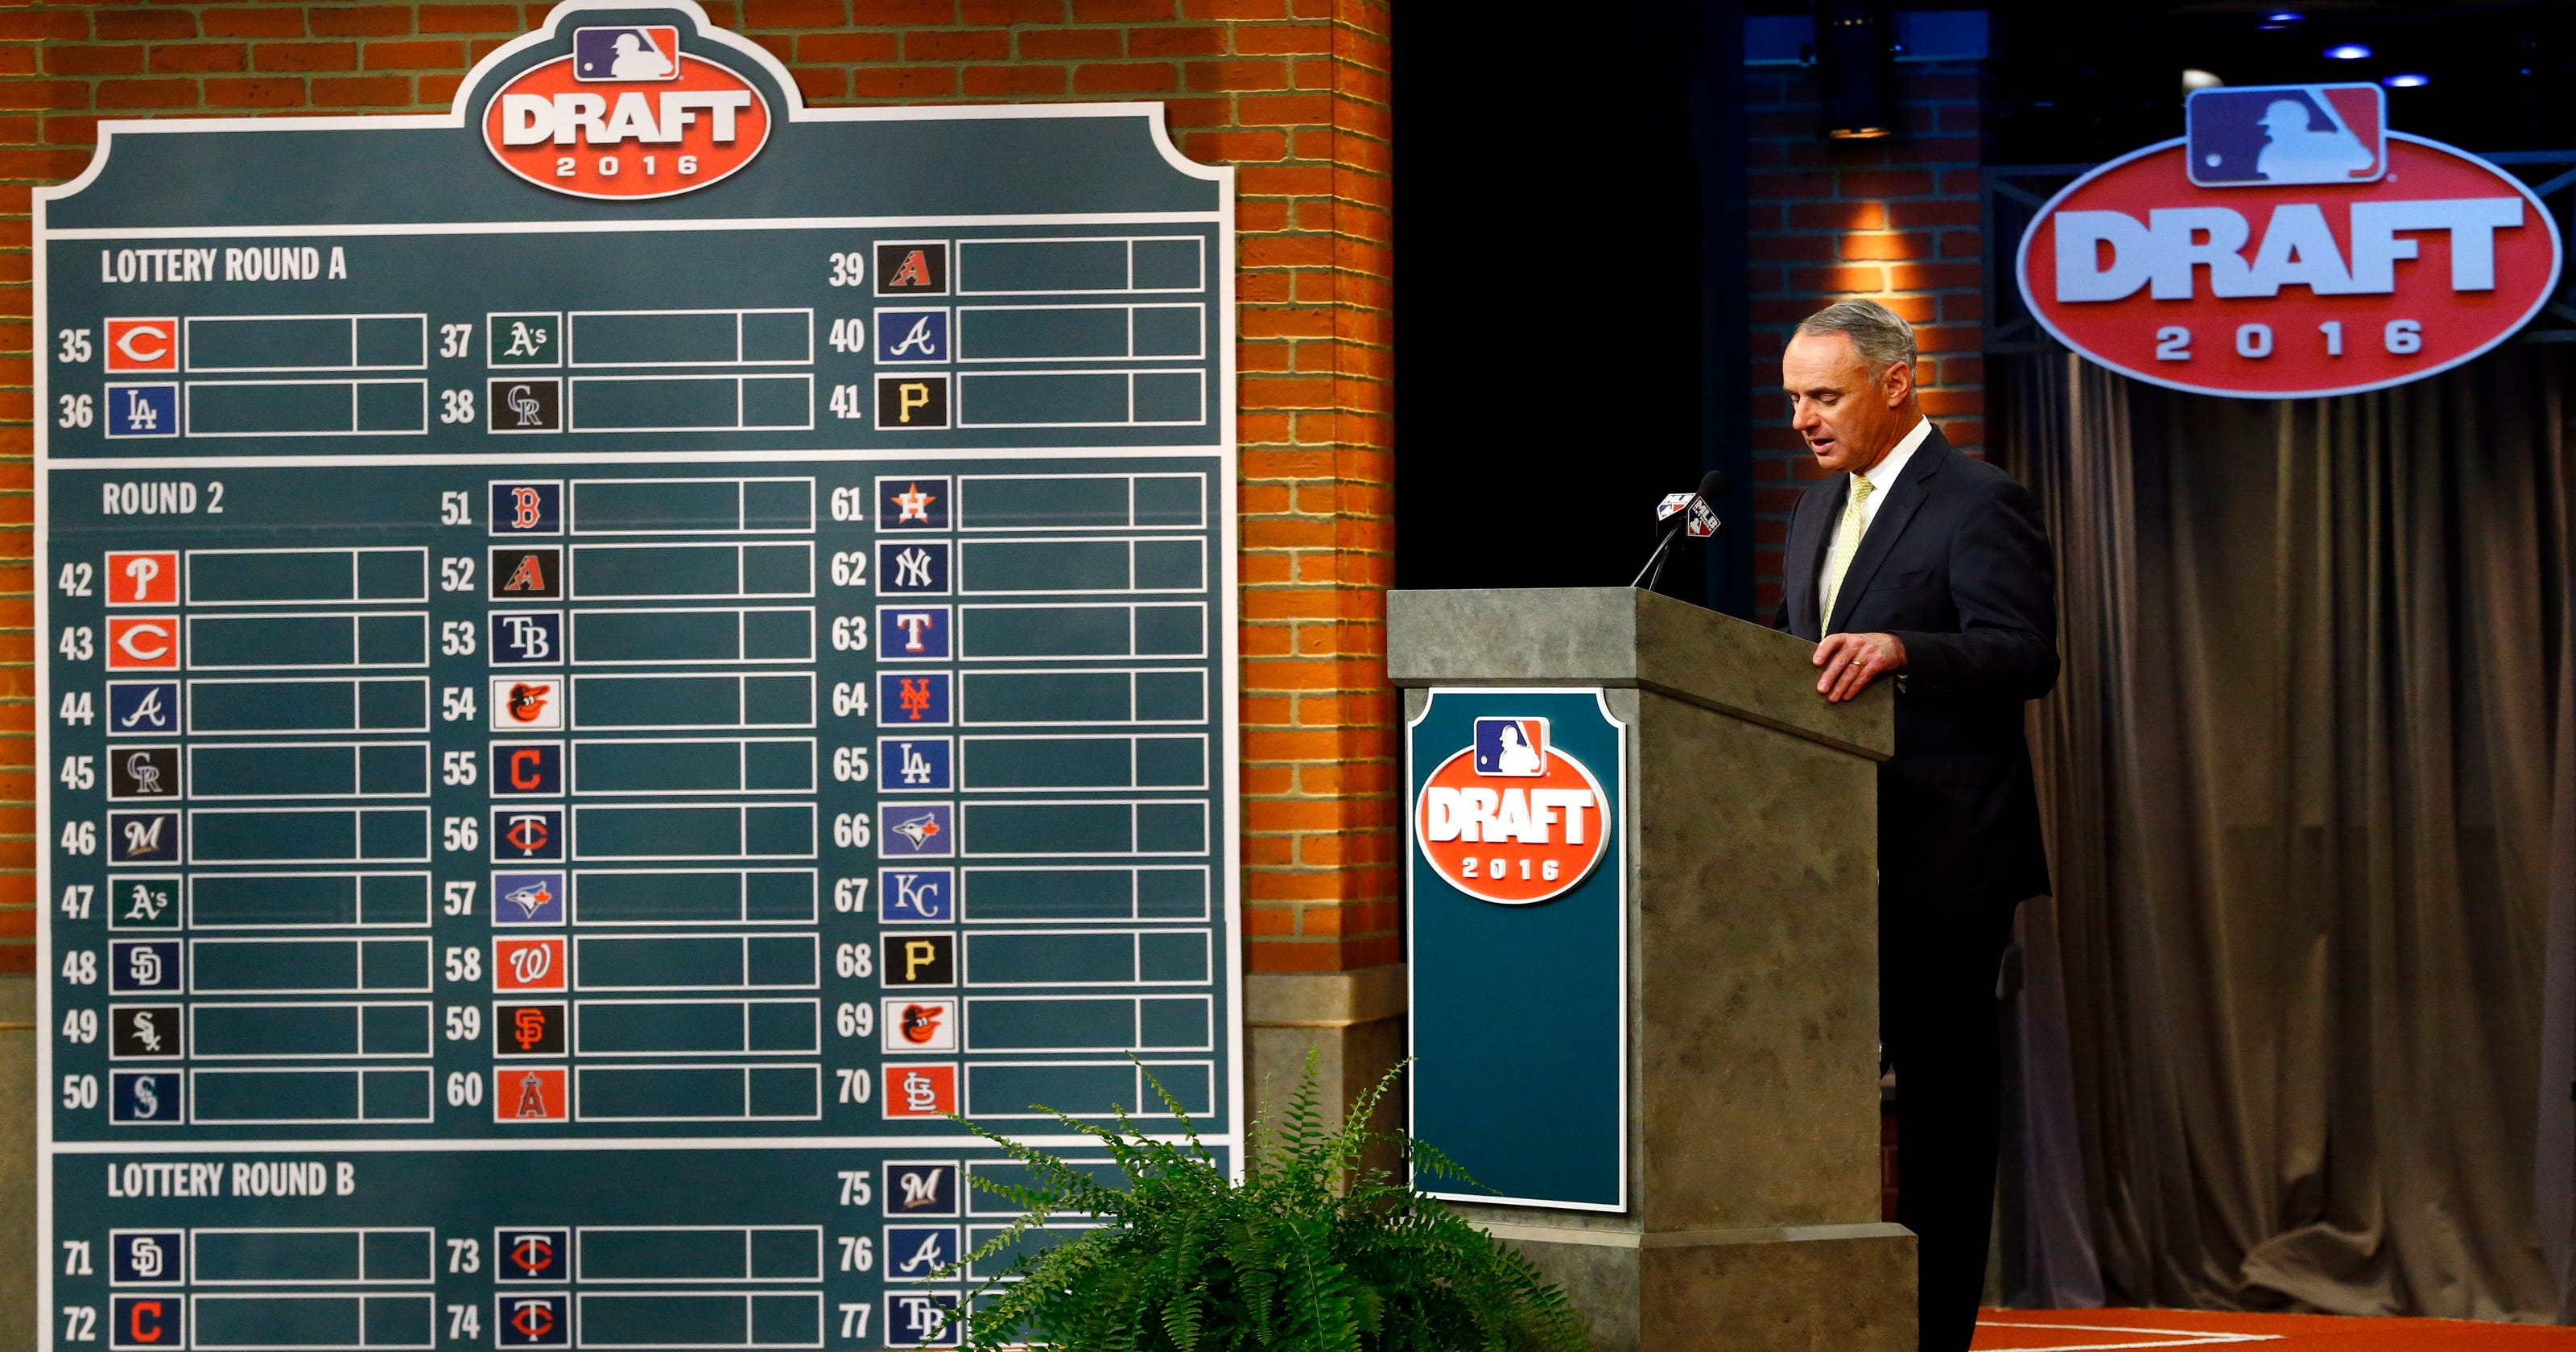 2019 MLB Draft order: Here's every pick from every round